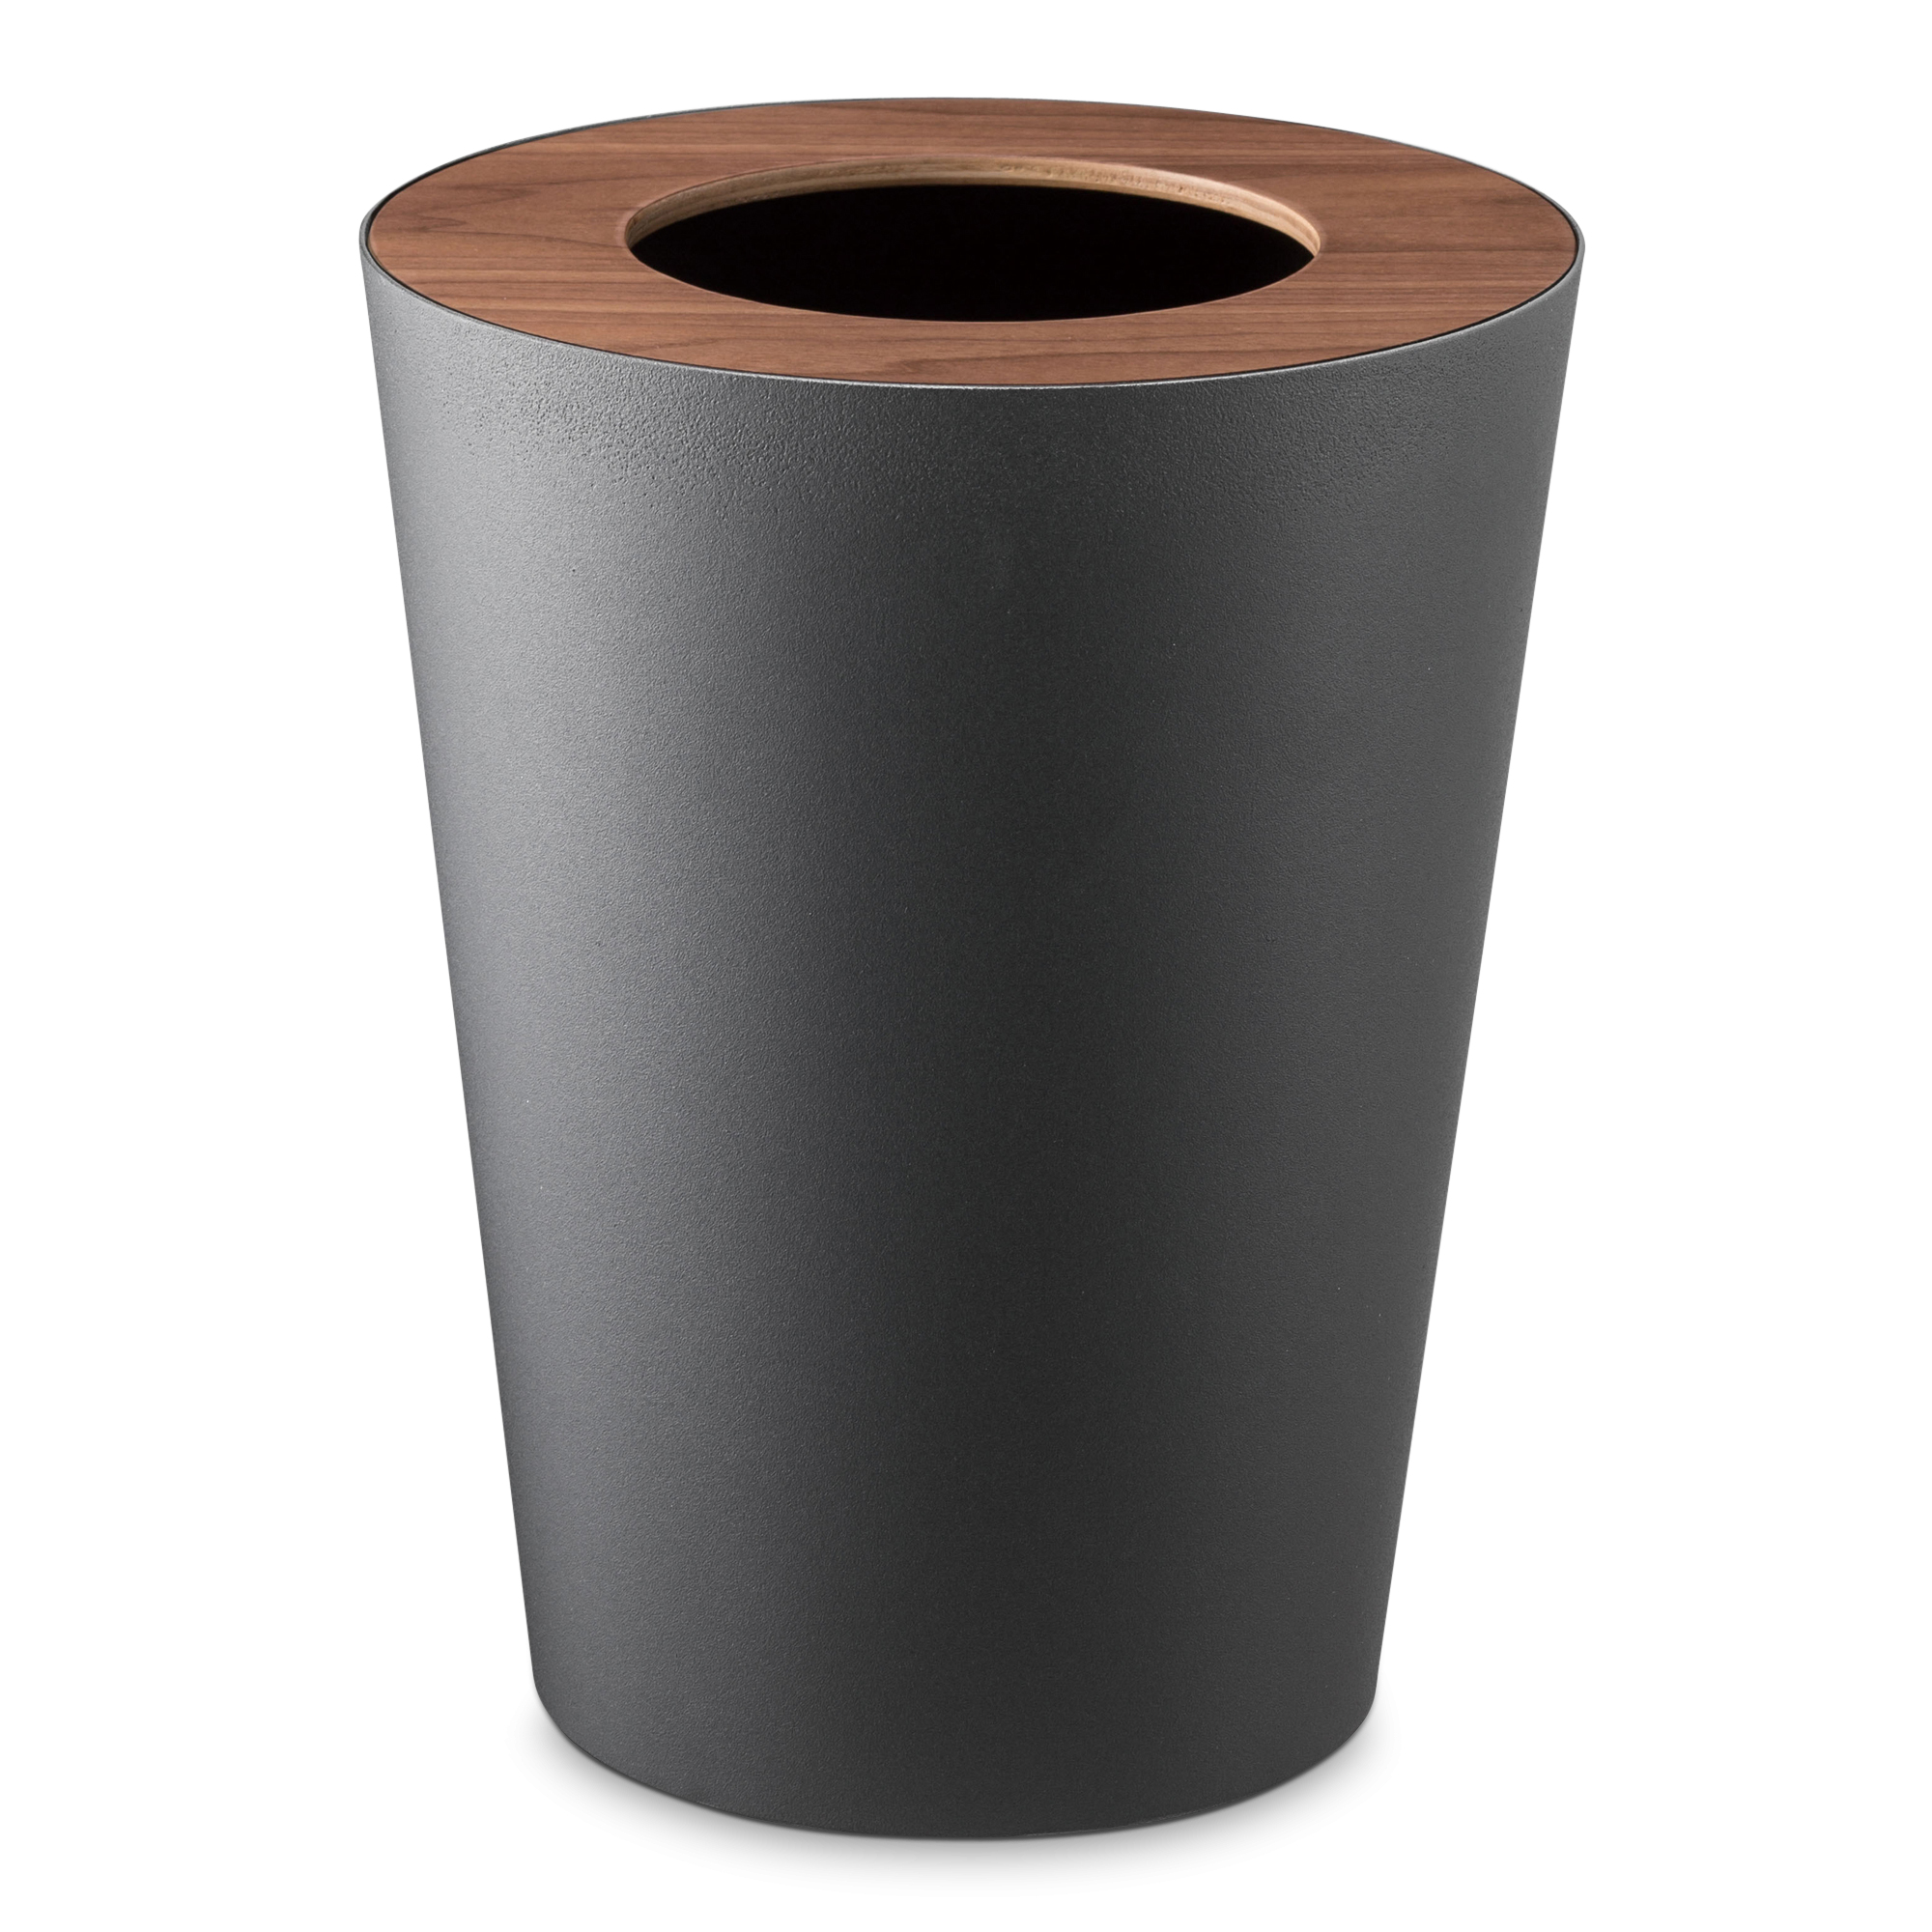 rin-round-trash-can-black-1